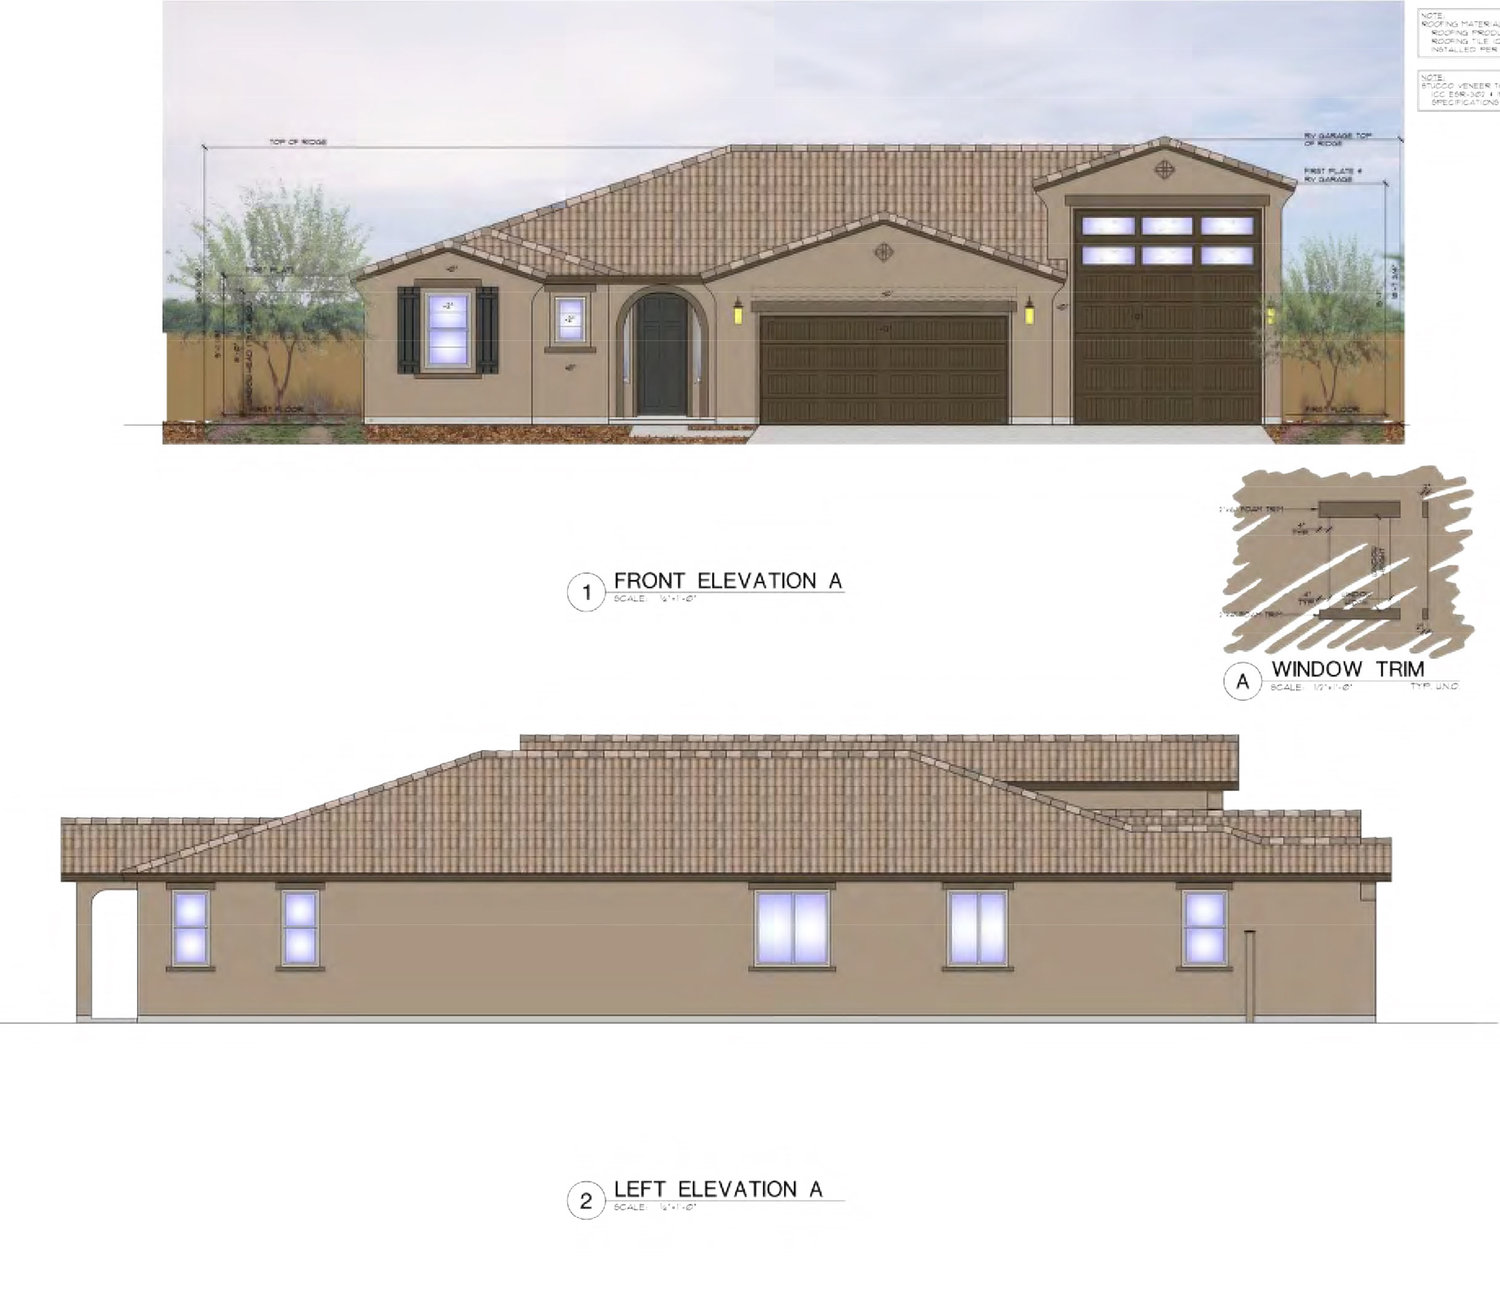 Queen Creek Planning and Zoning Commission meets Jan. 8 ... on rv garage home communities, rv garage house plans, 3 car garage home floor plans, coachmen rv floor plans, log floor plans, rv bathroom floor plans, rv garage building plans,